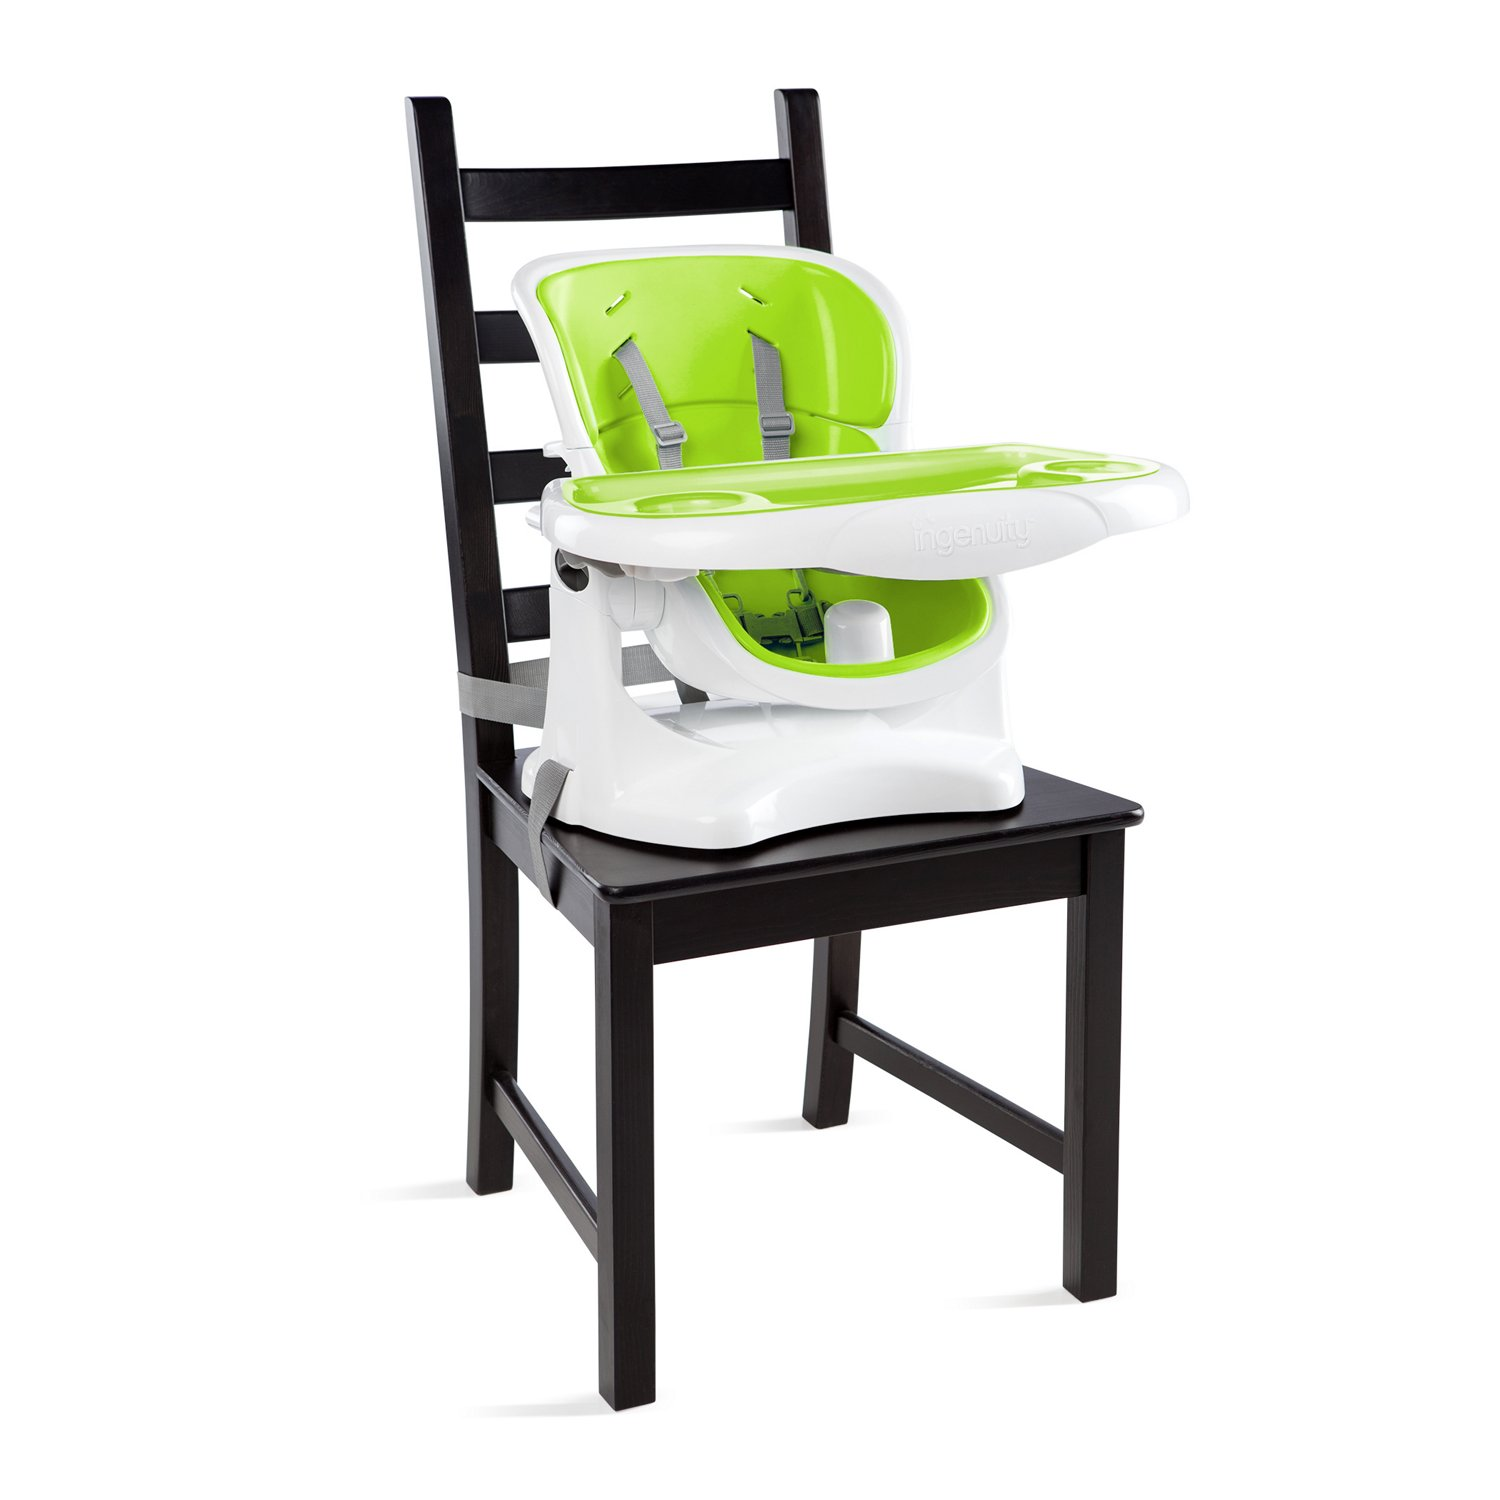 SmartClean™ ChairMate™ Chair Top High Chair - Lime